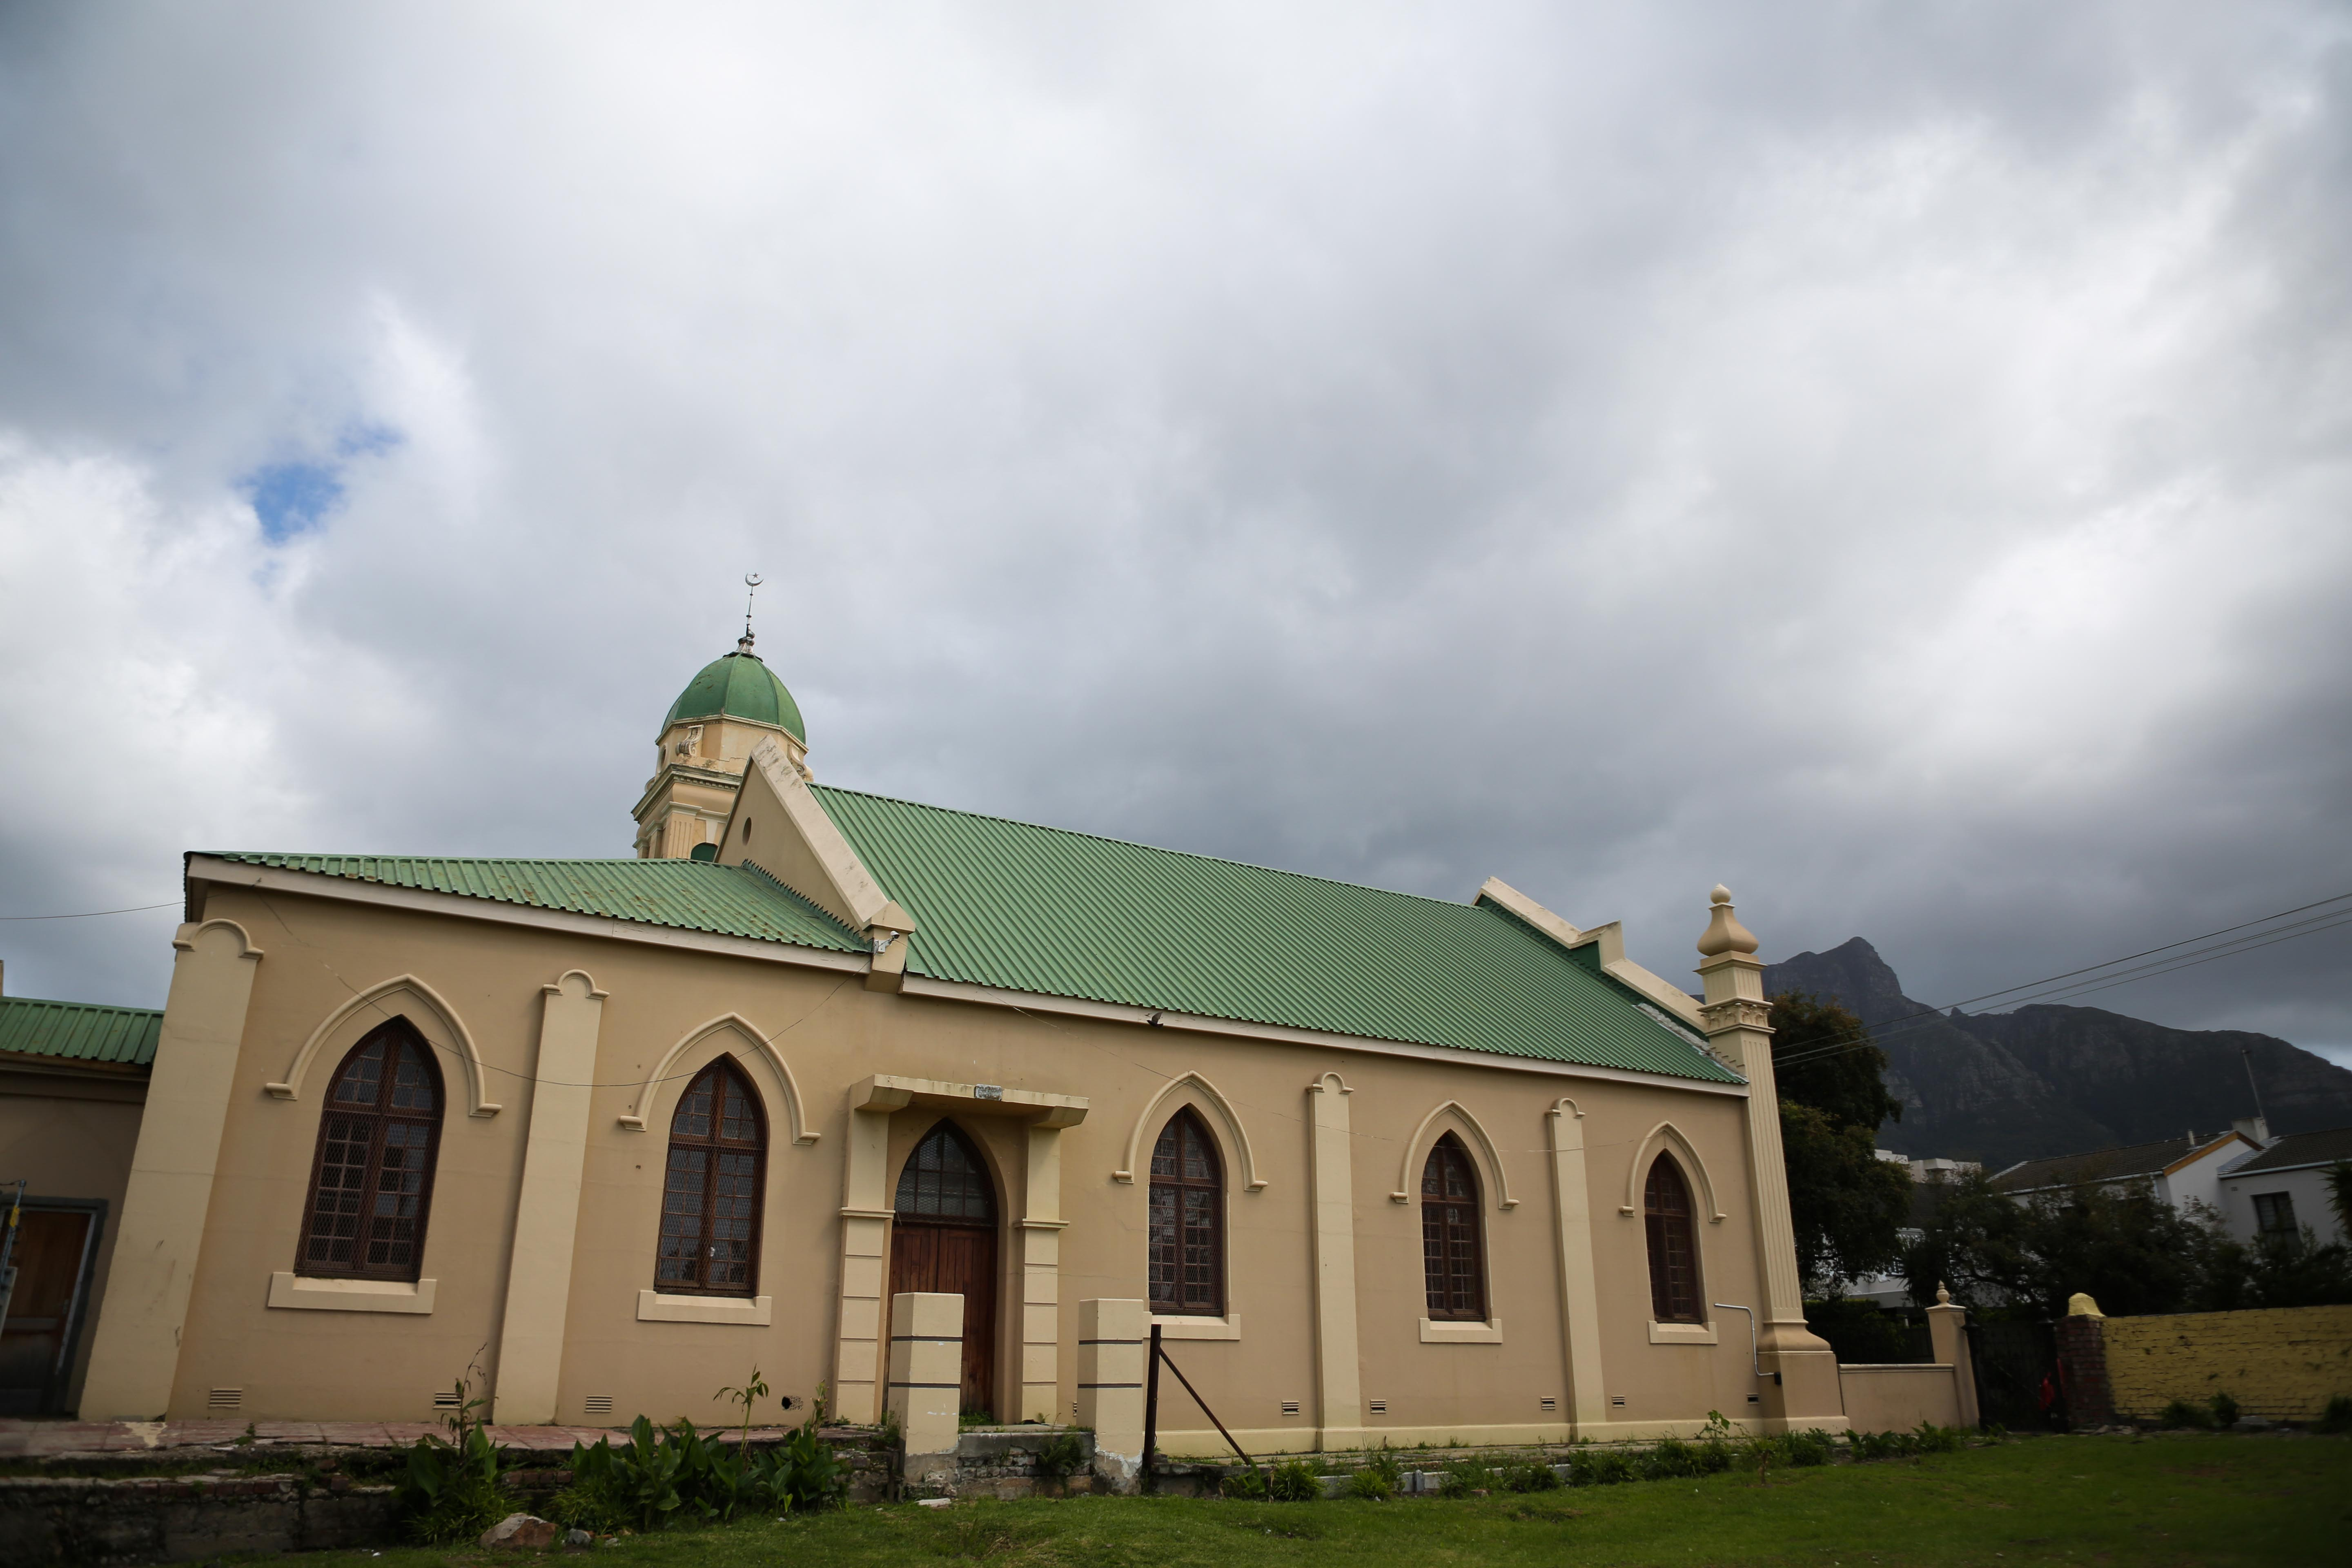 22 September 2019: Al Jaamia Mosque on Stegman Road, Claremont, where Imam Haron was appointed in 1955.